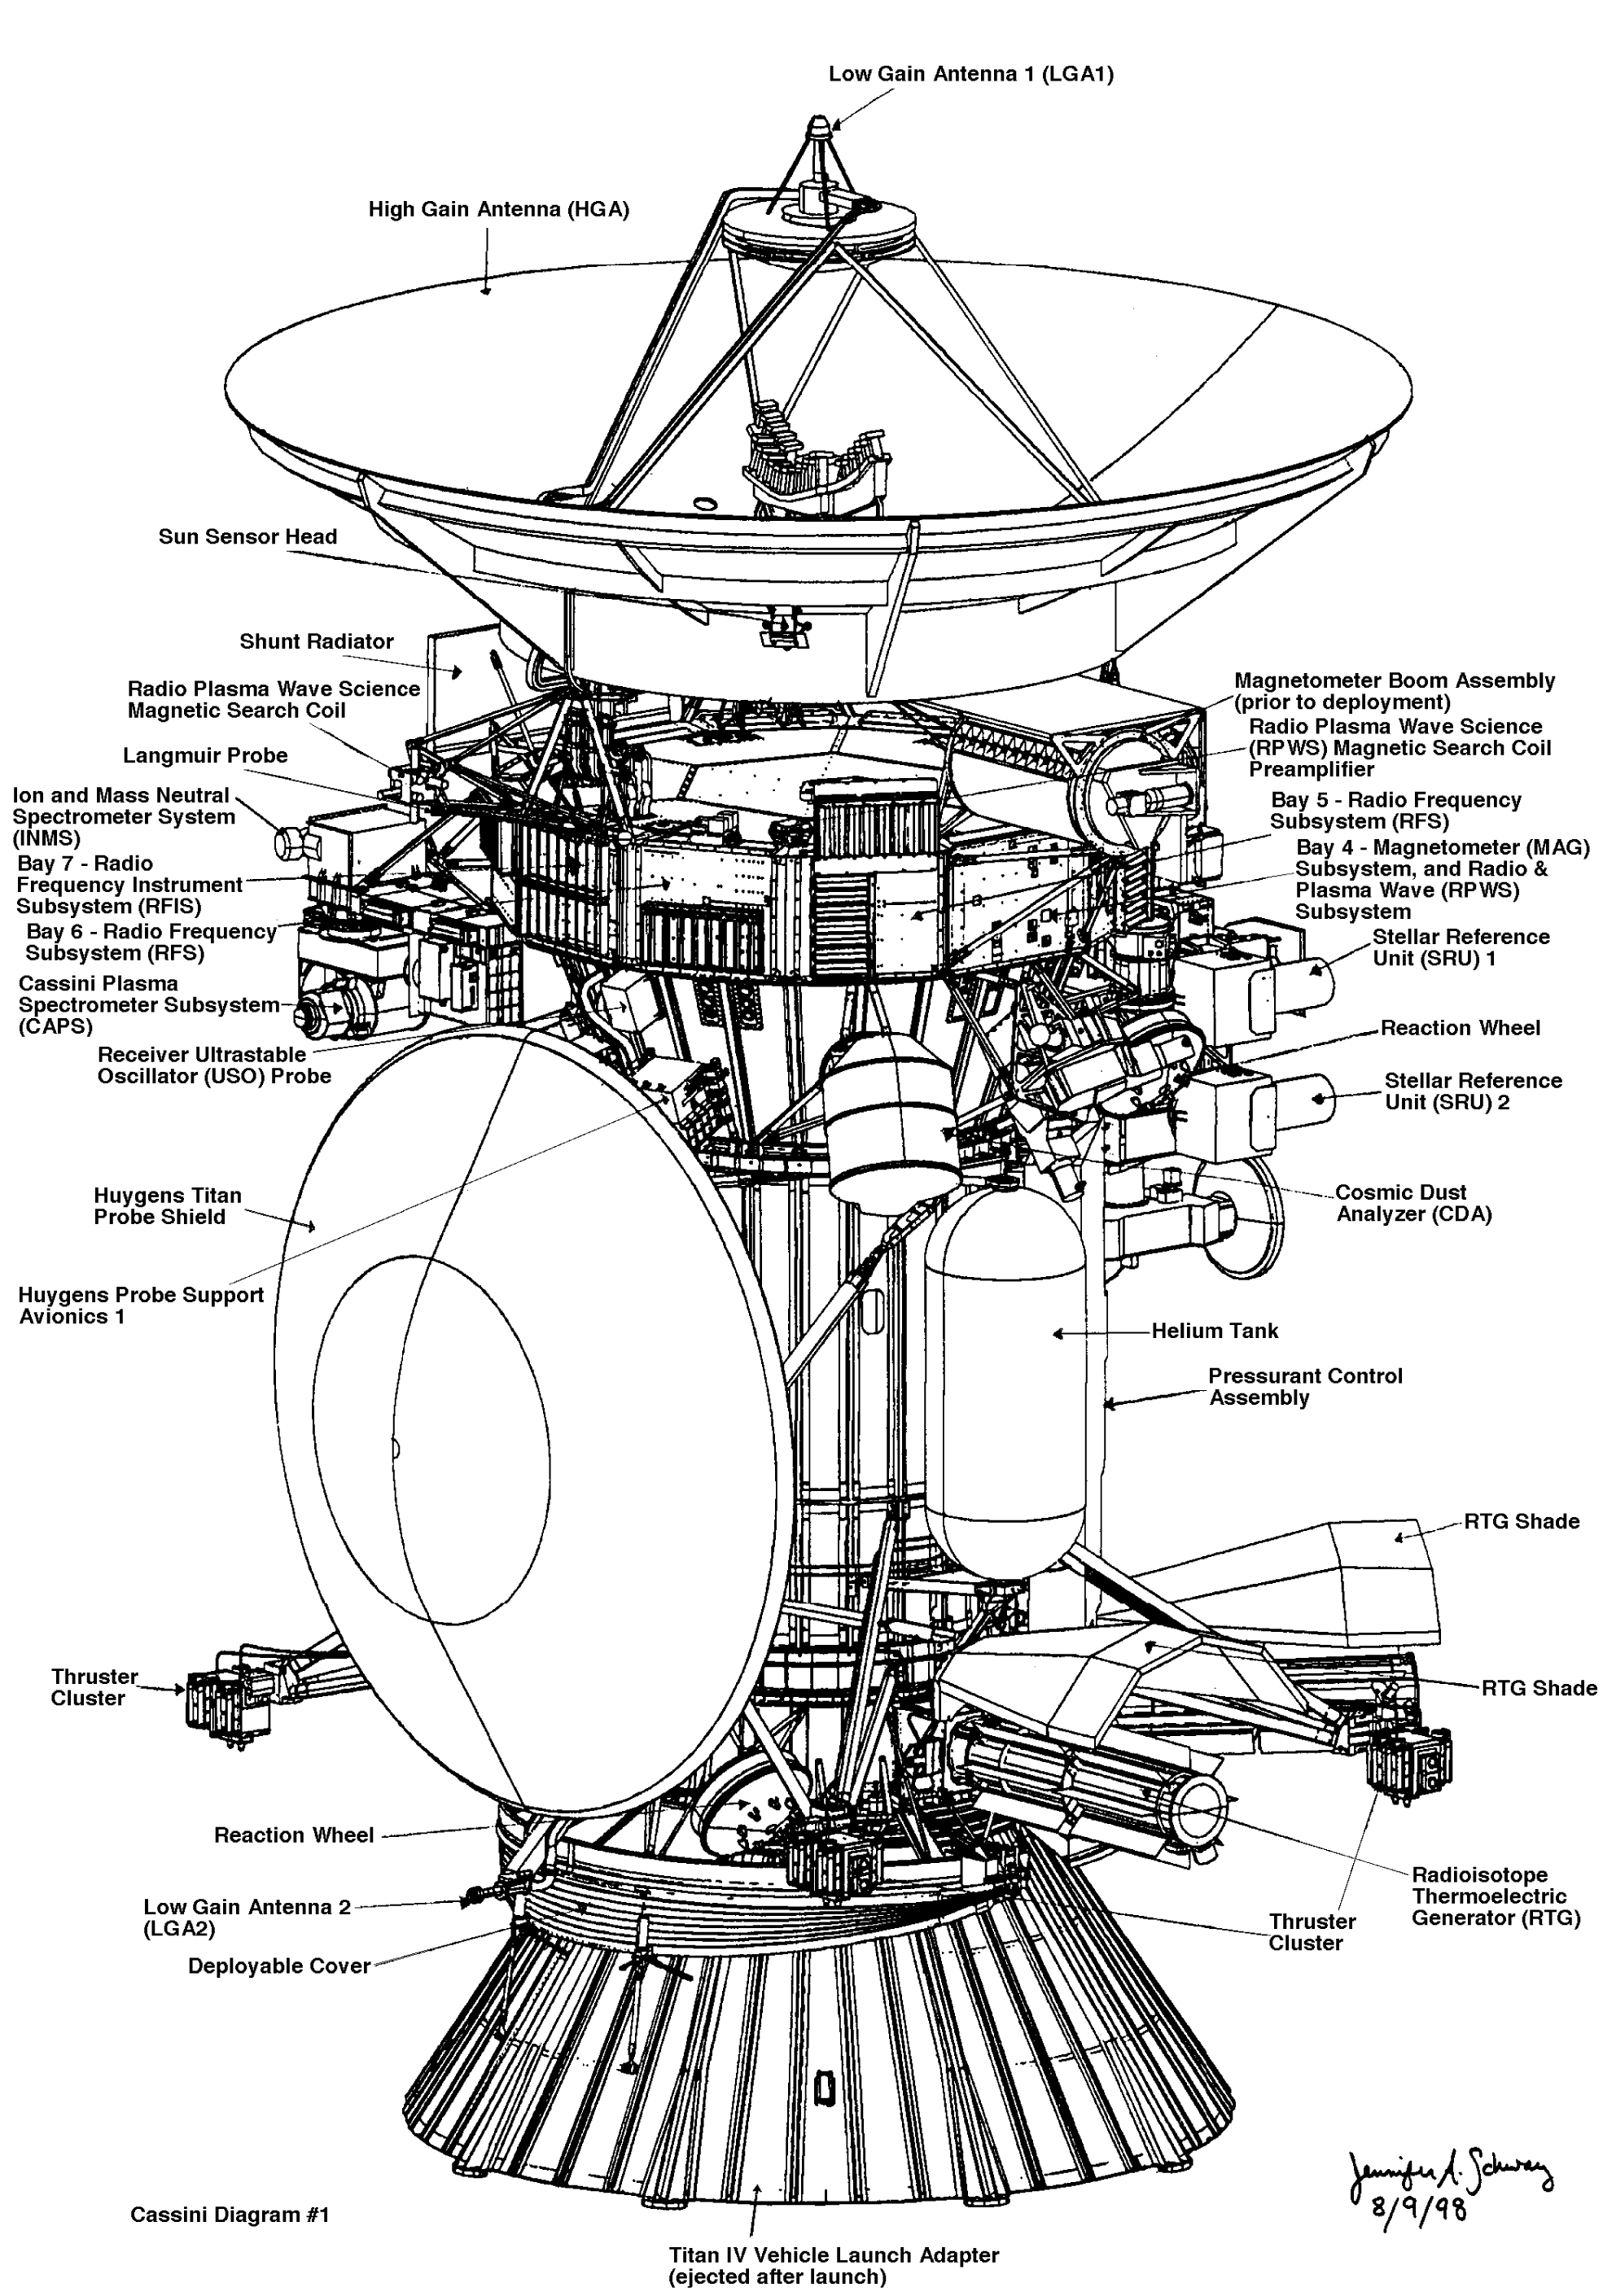 Cassini Diagram No 1